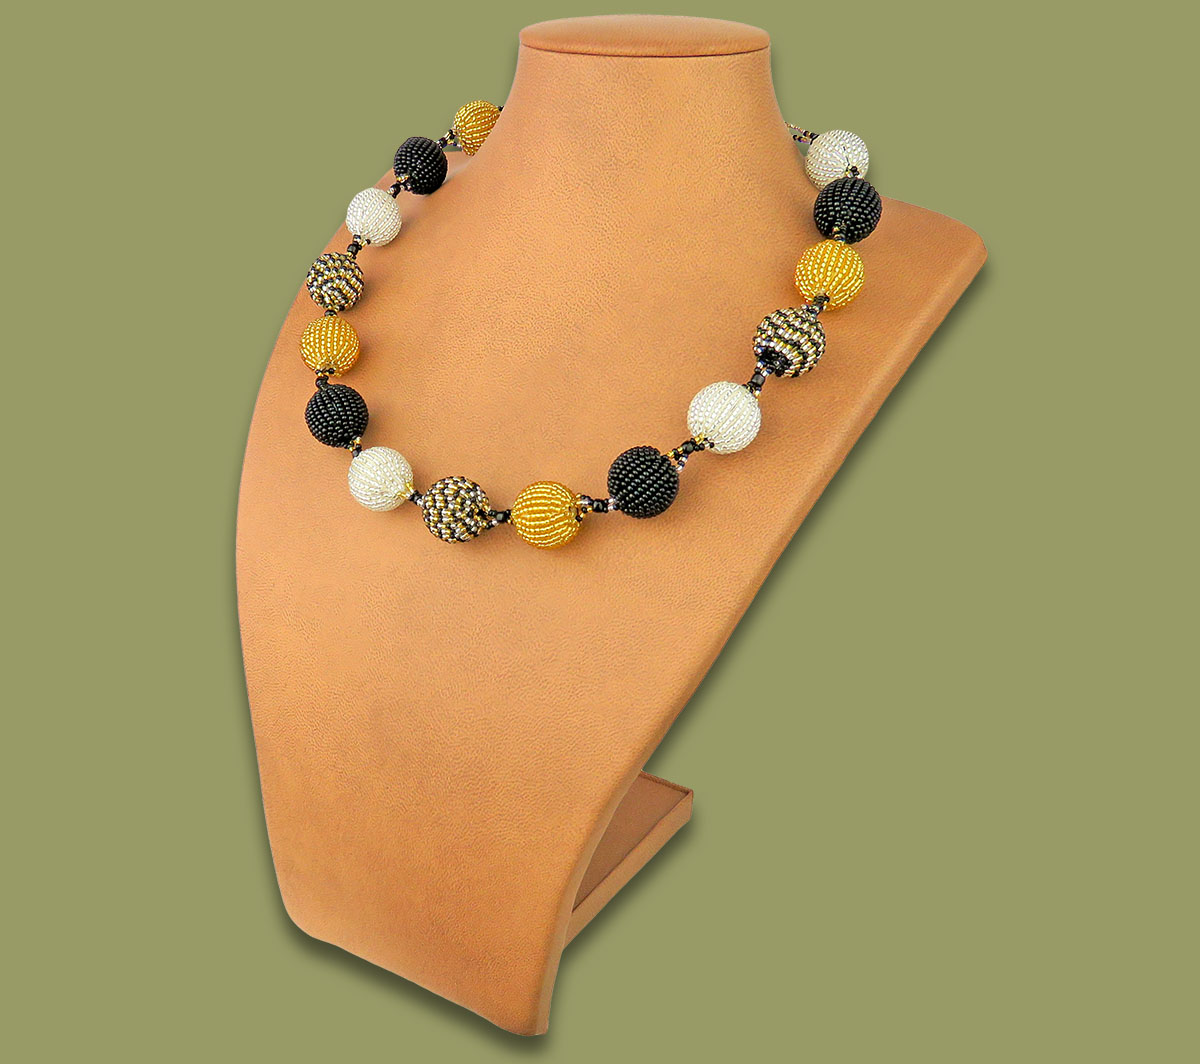 African Beaded Bobble Necklace Gold Silver Black